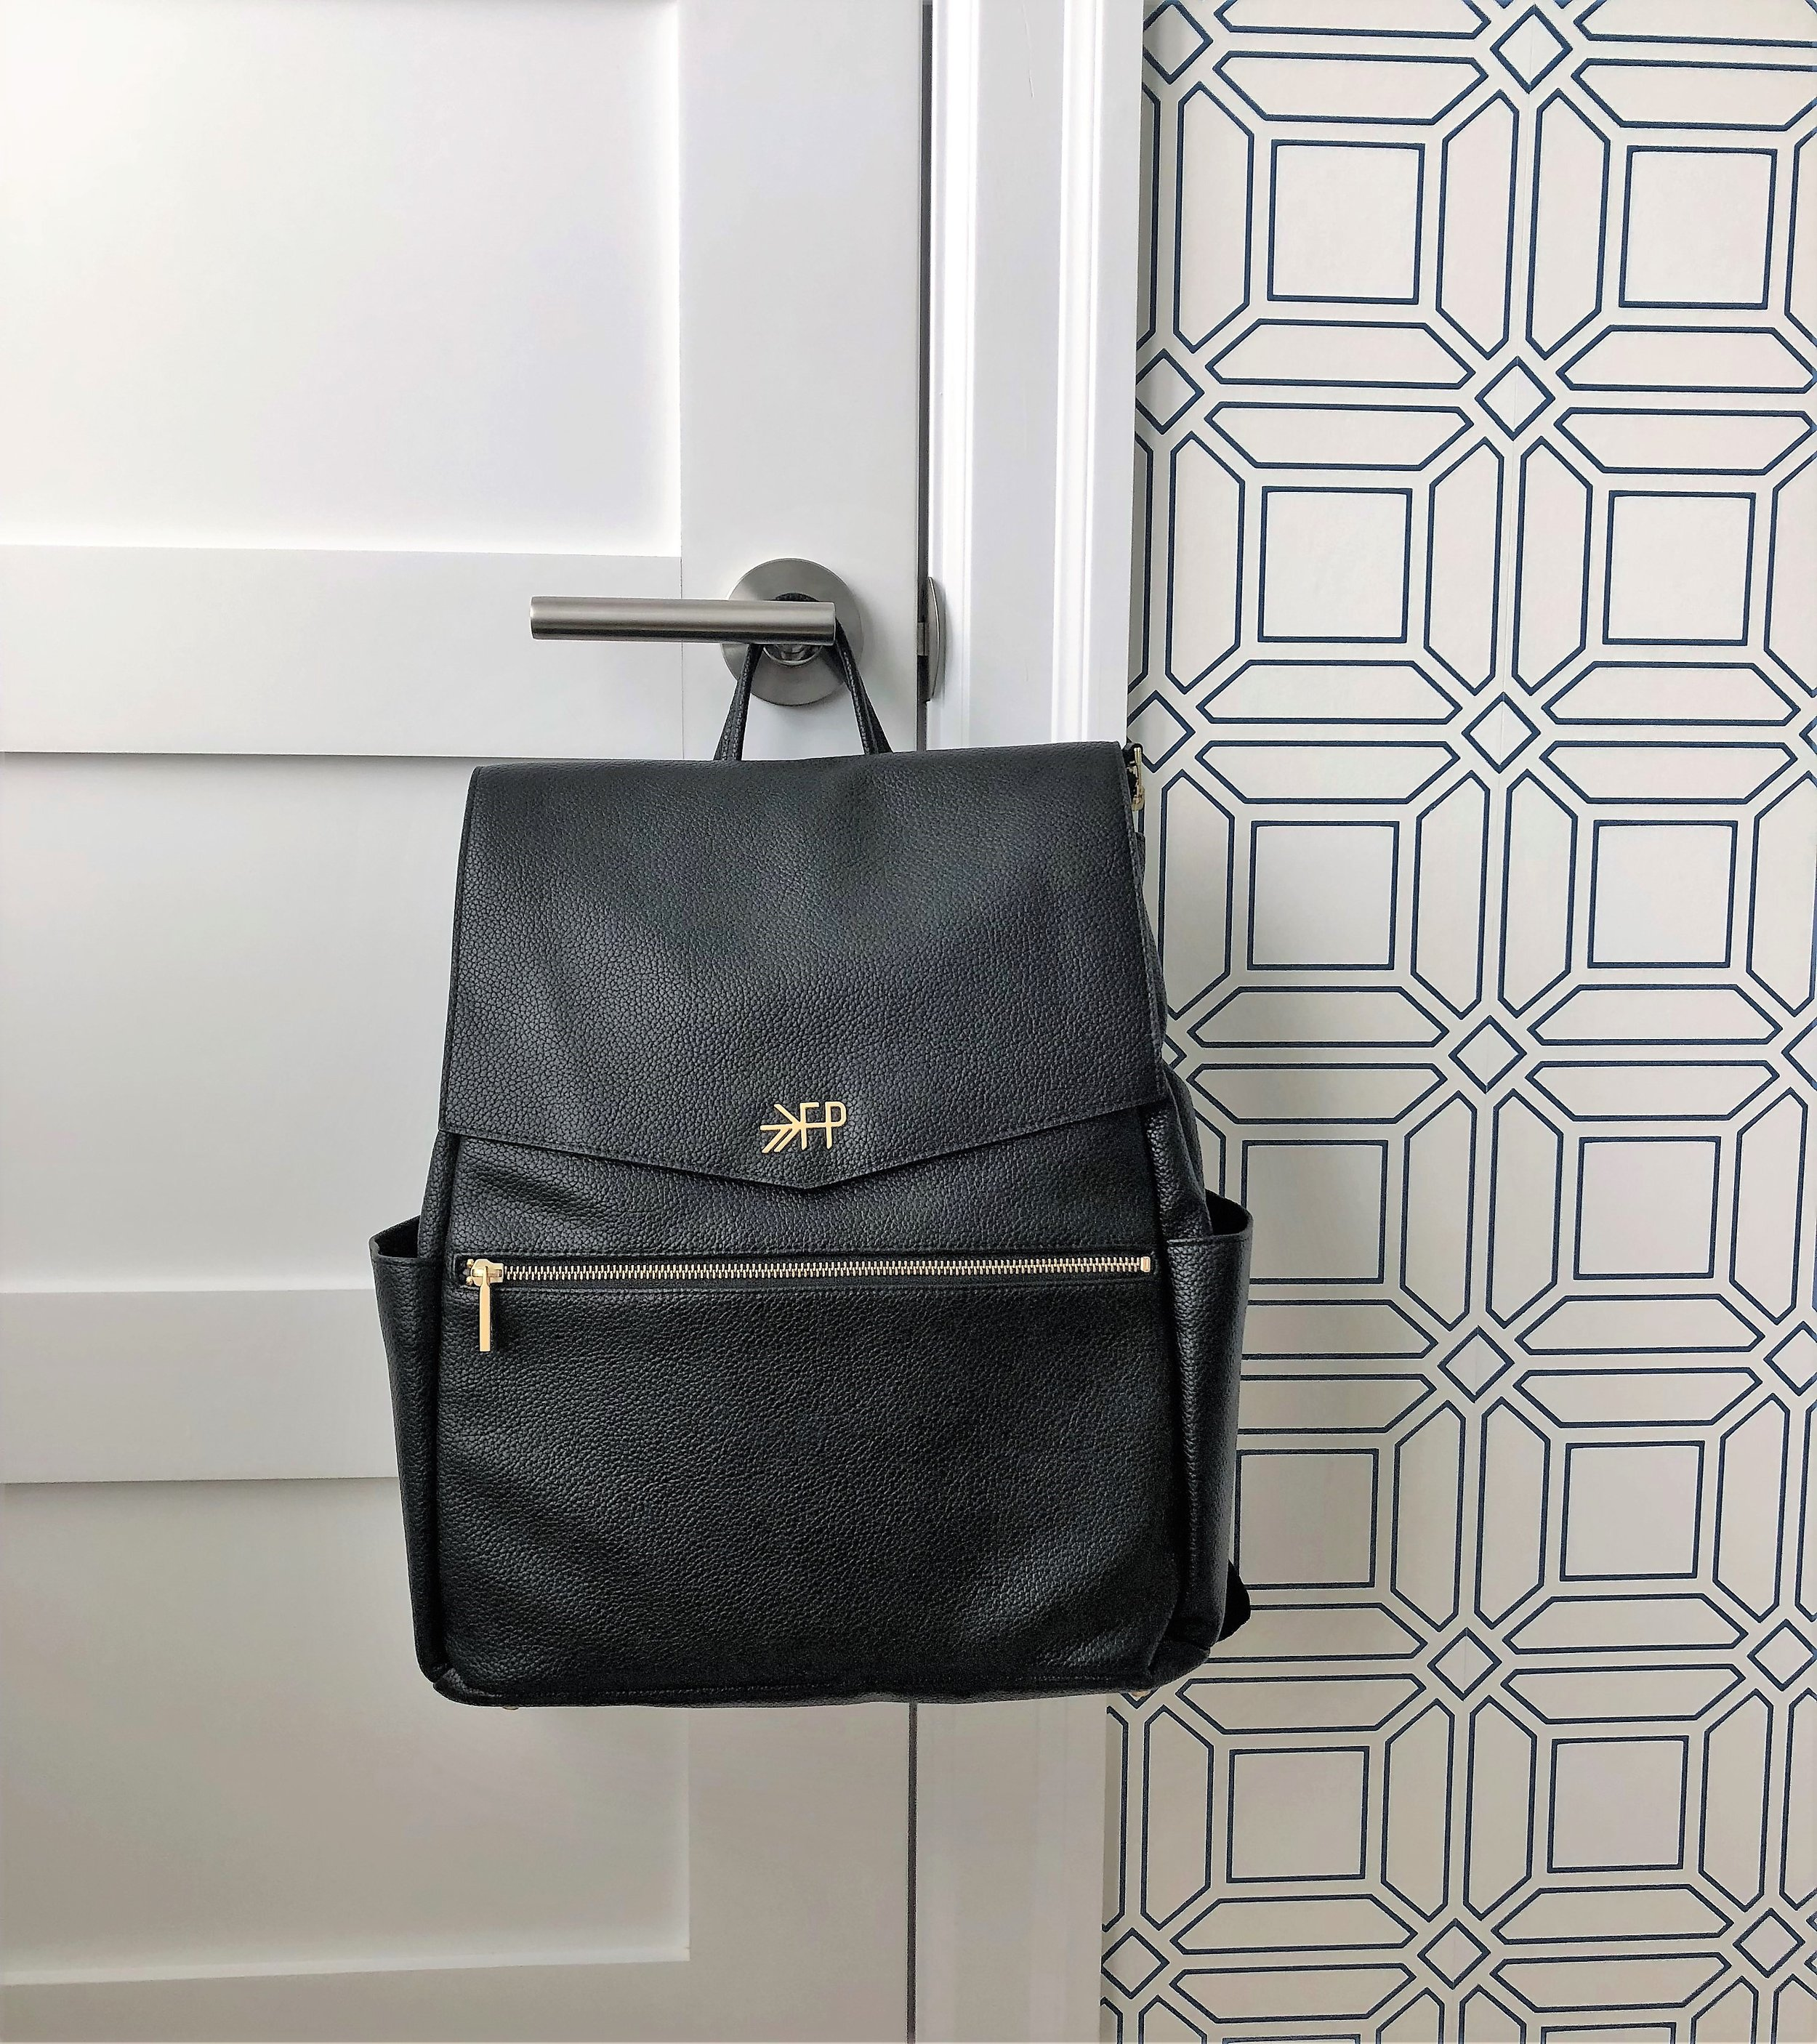 When it came to diaper bags, I knew I wanted a back pack. I also wanted one that was simple and didn't look like a diaper bag, if that makes any sense. On one shopping trip to Nordstrom, I found and tried on this faux leather one by Freshly Picked. I didn't immediately buy it mainly because of the price ($175) and I wanted to make sure to shop around first. After searching high and low, I decided that this was the one I wanted. It's pretty spacious, has plenty of pockets and can be easily wiped clean. This bag is available at  Buy Buy Baby  and I was able to use a 20% coupon ($140)!